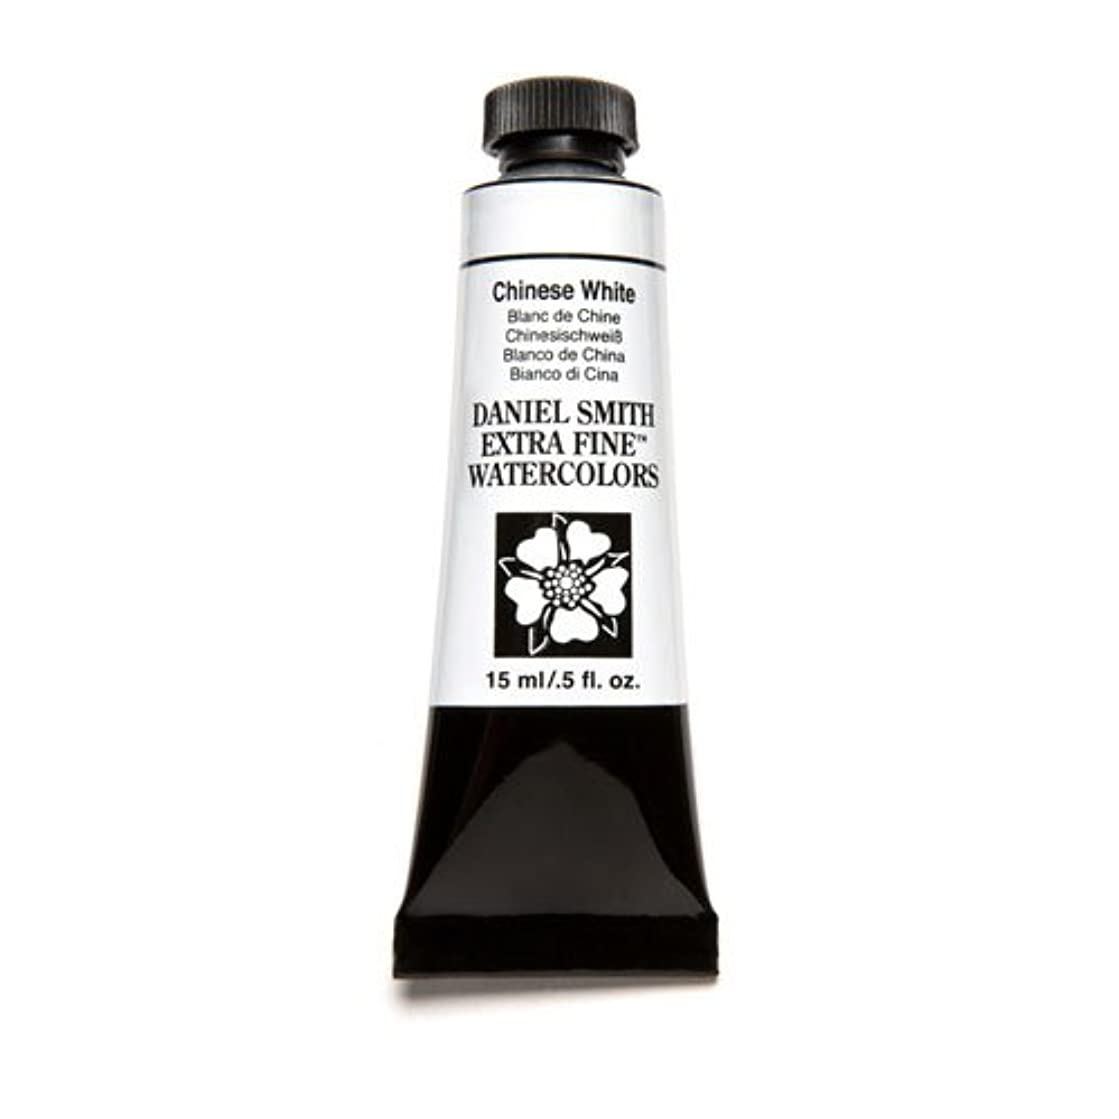 DANIEL SMITH Extra Fine Watercolor 15ml Paint Tube, Chinese White